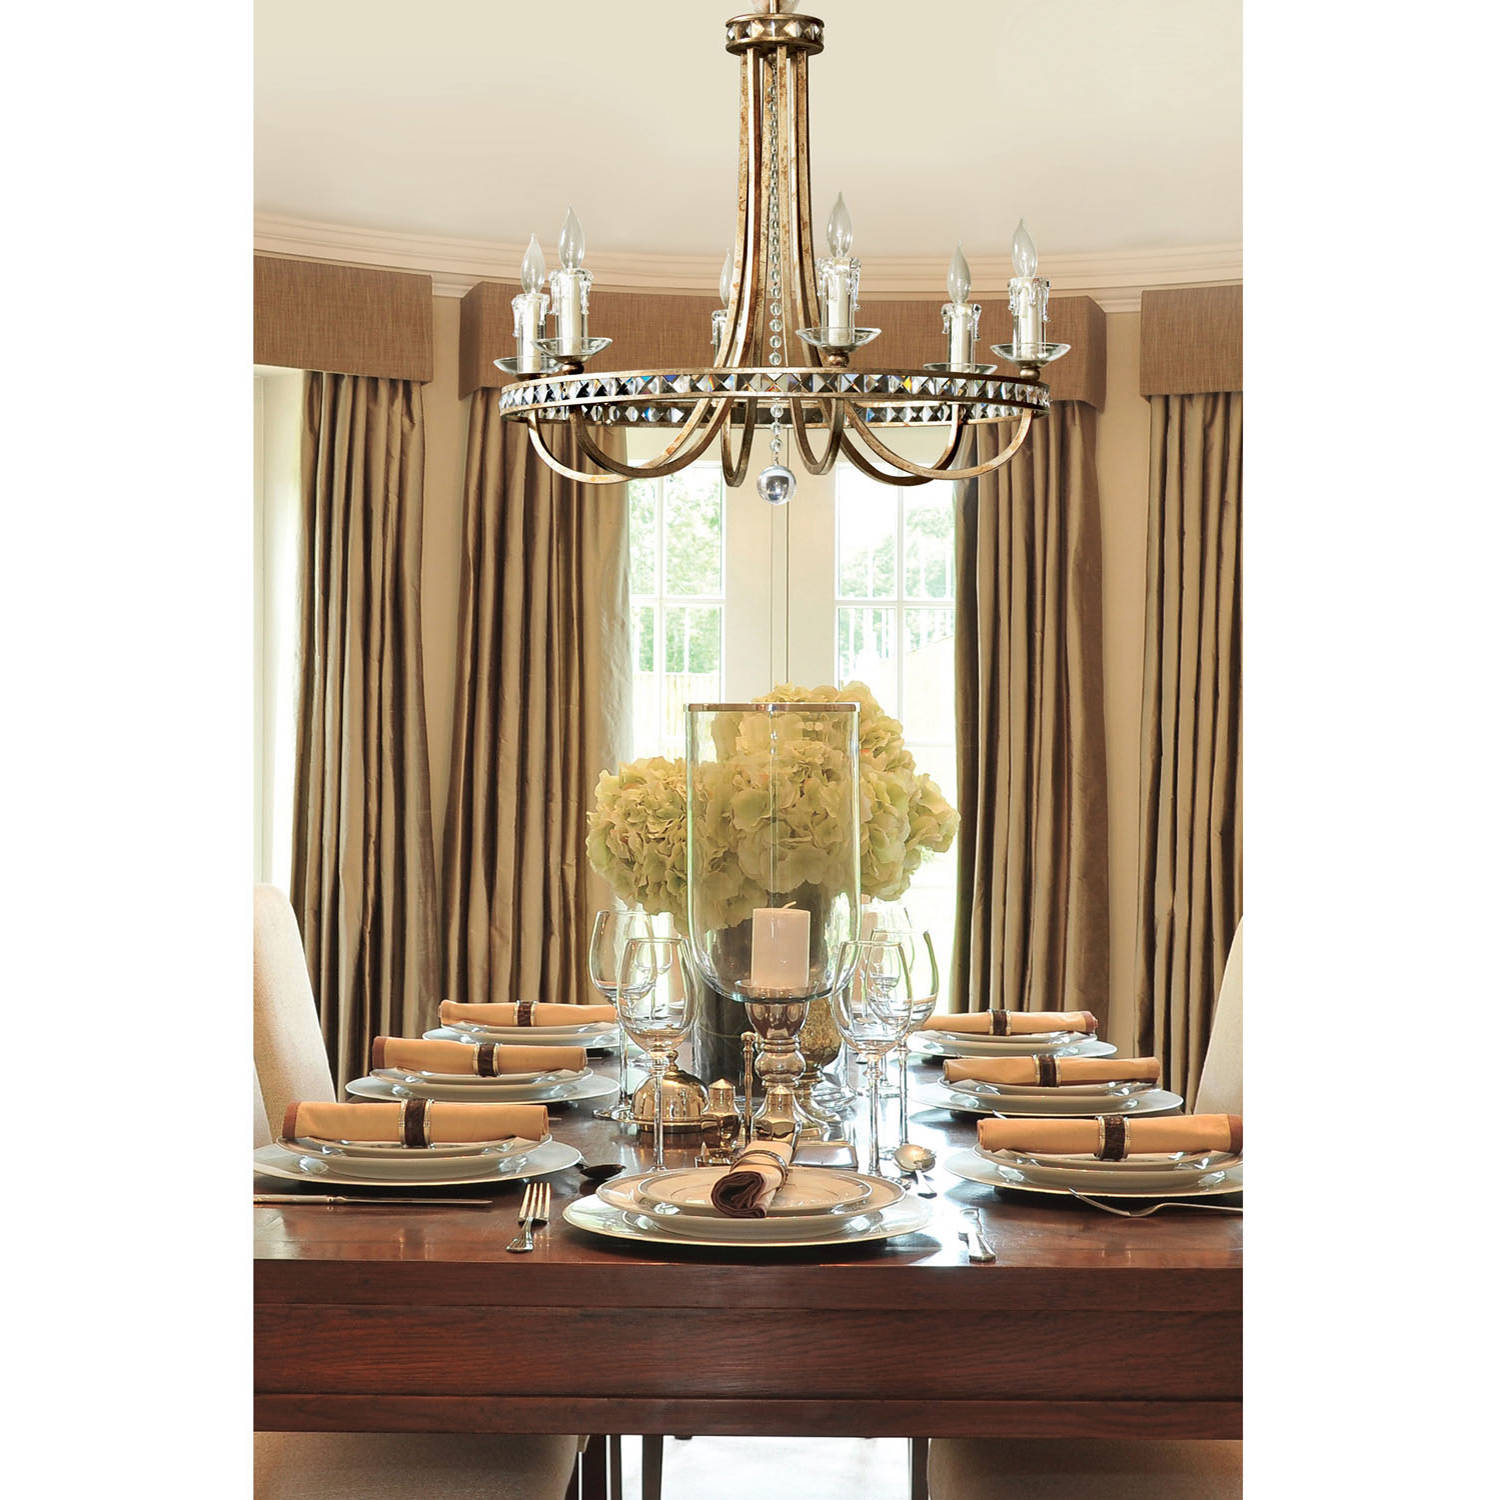 AF Lighting Aristocrat 8-Light Chandelier